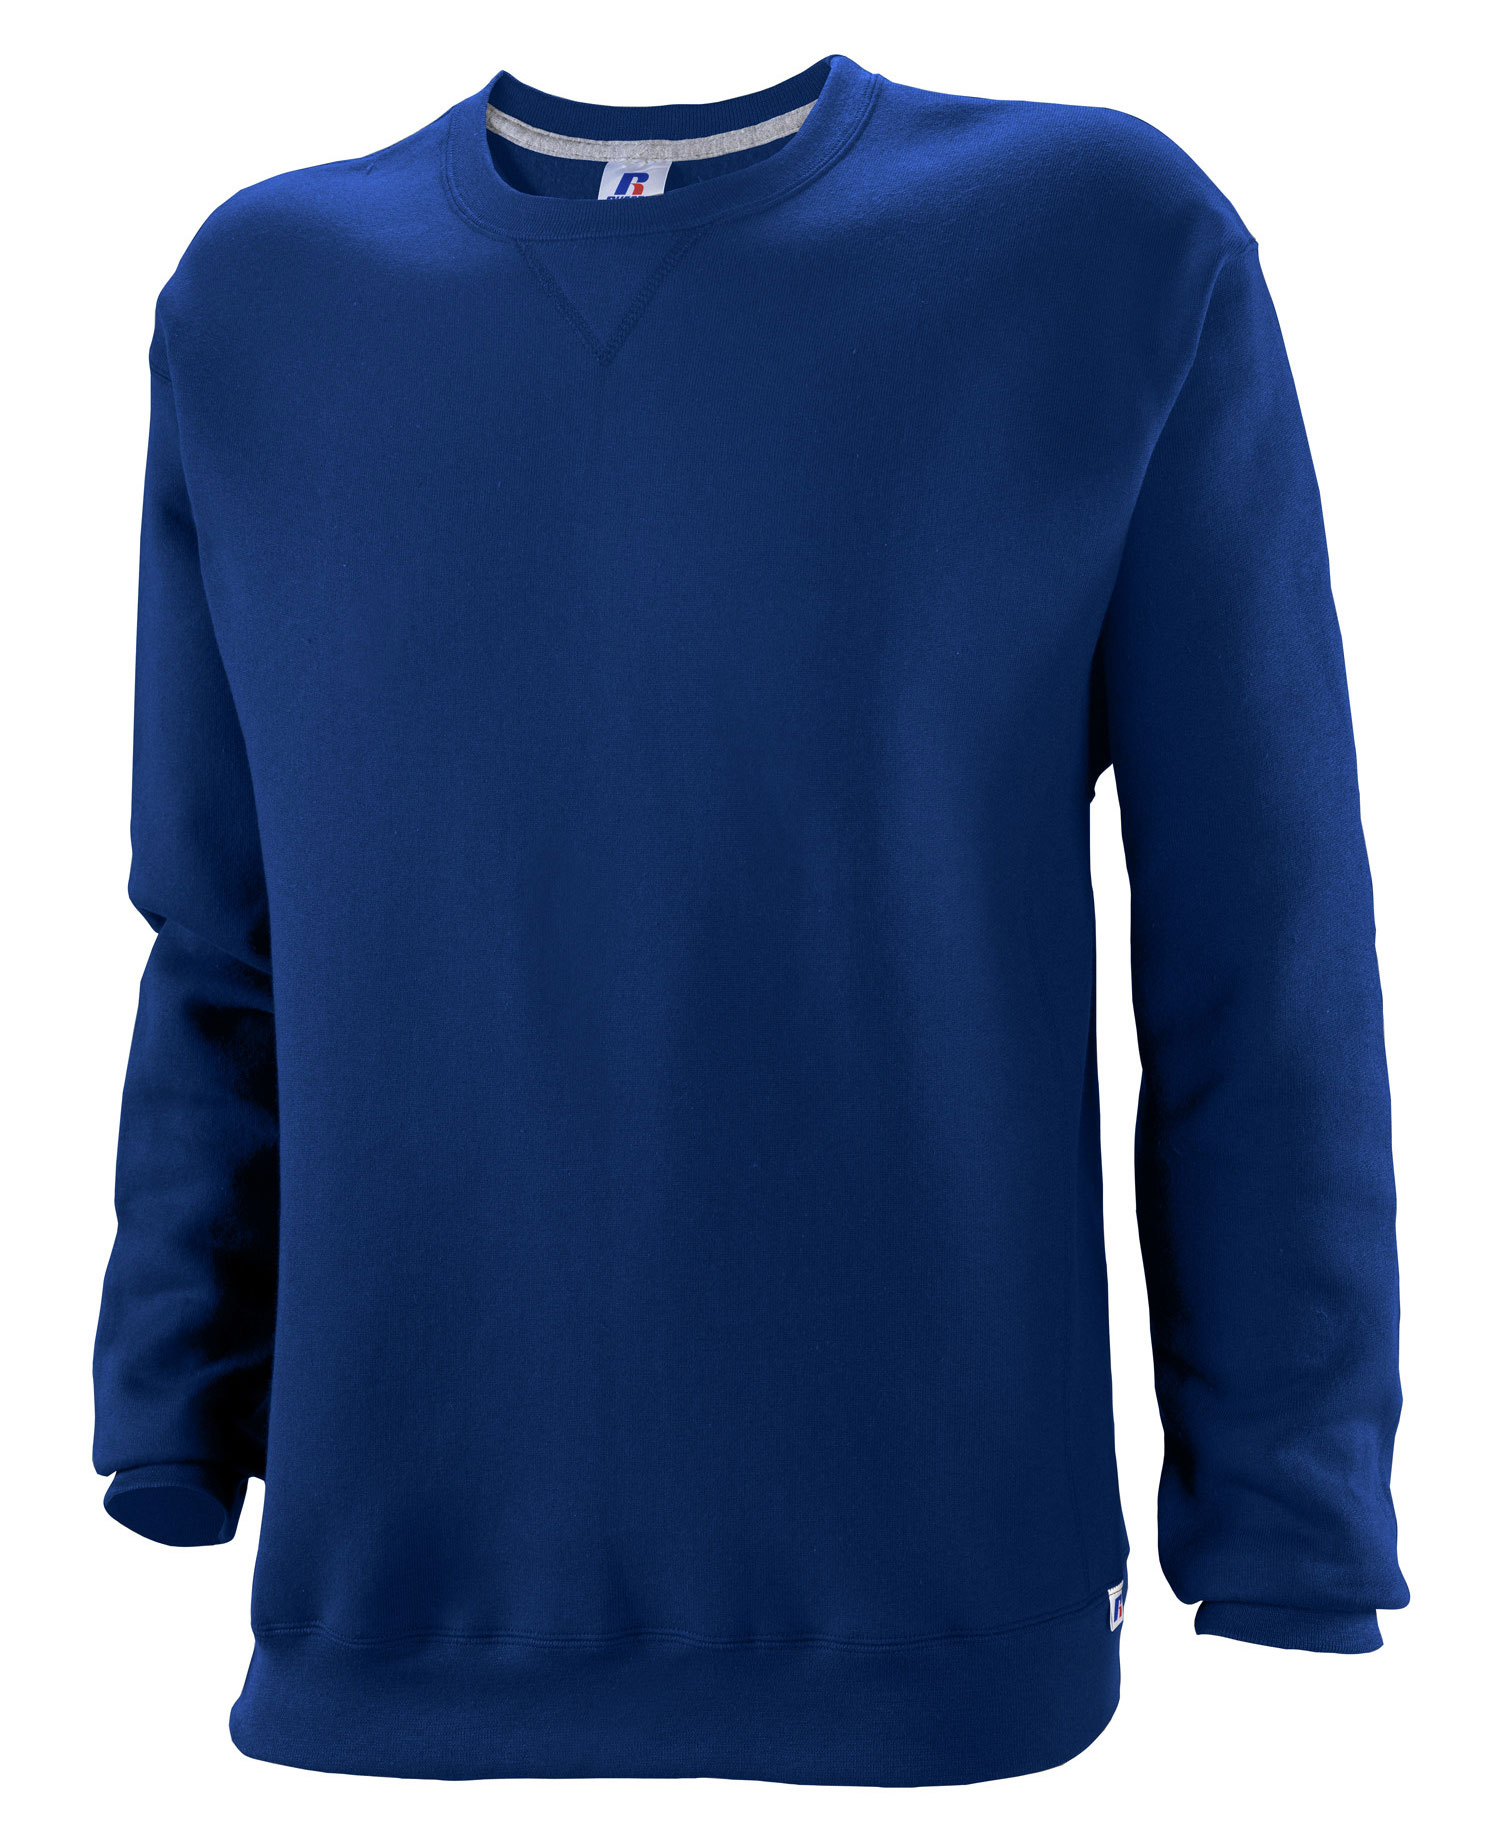 Russell Mens Dri-Power® Crewneck Sweatshirt